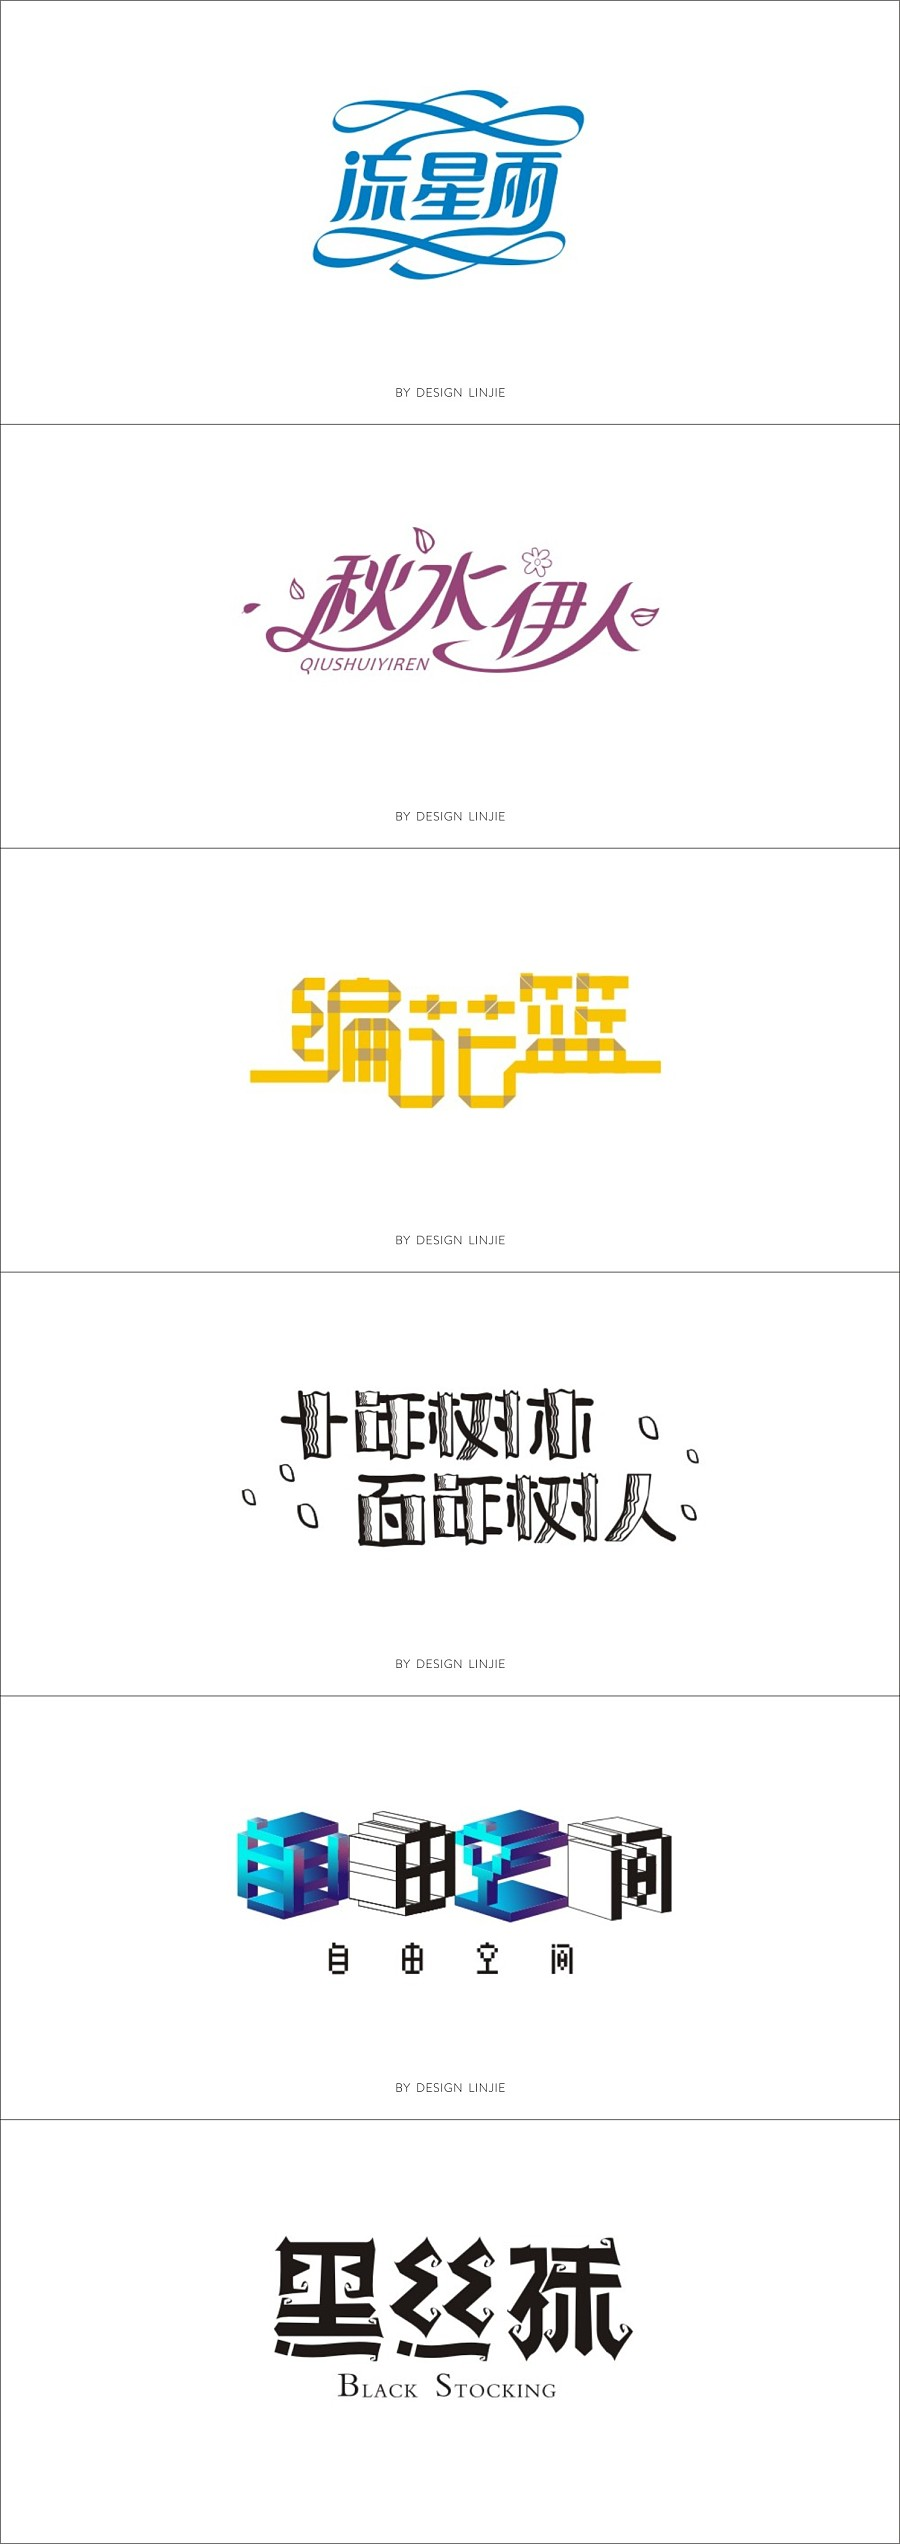 chinesefontdesign.com 2017 01 31 19 17 02 100+ Wonderful idea of the Chinese font logo design #.113